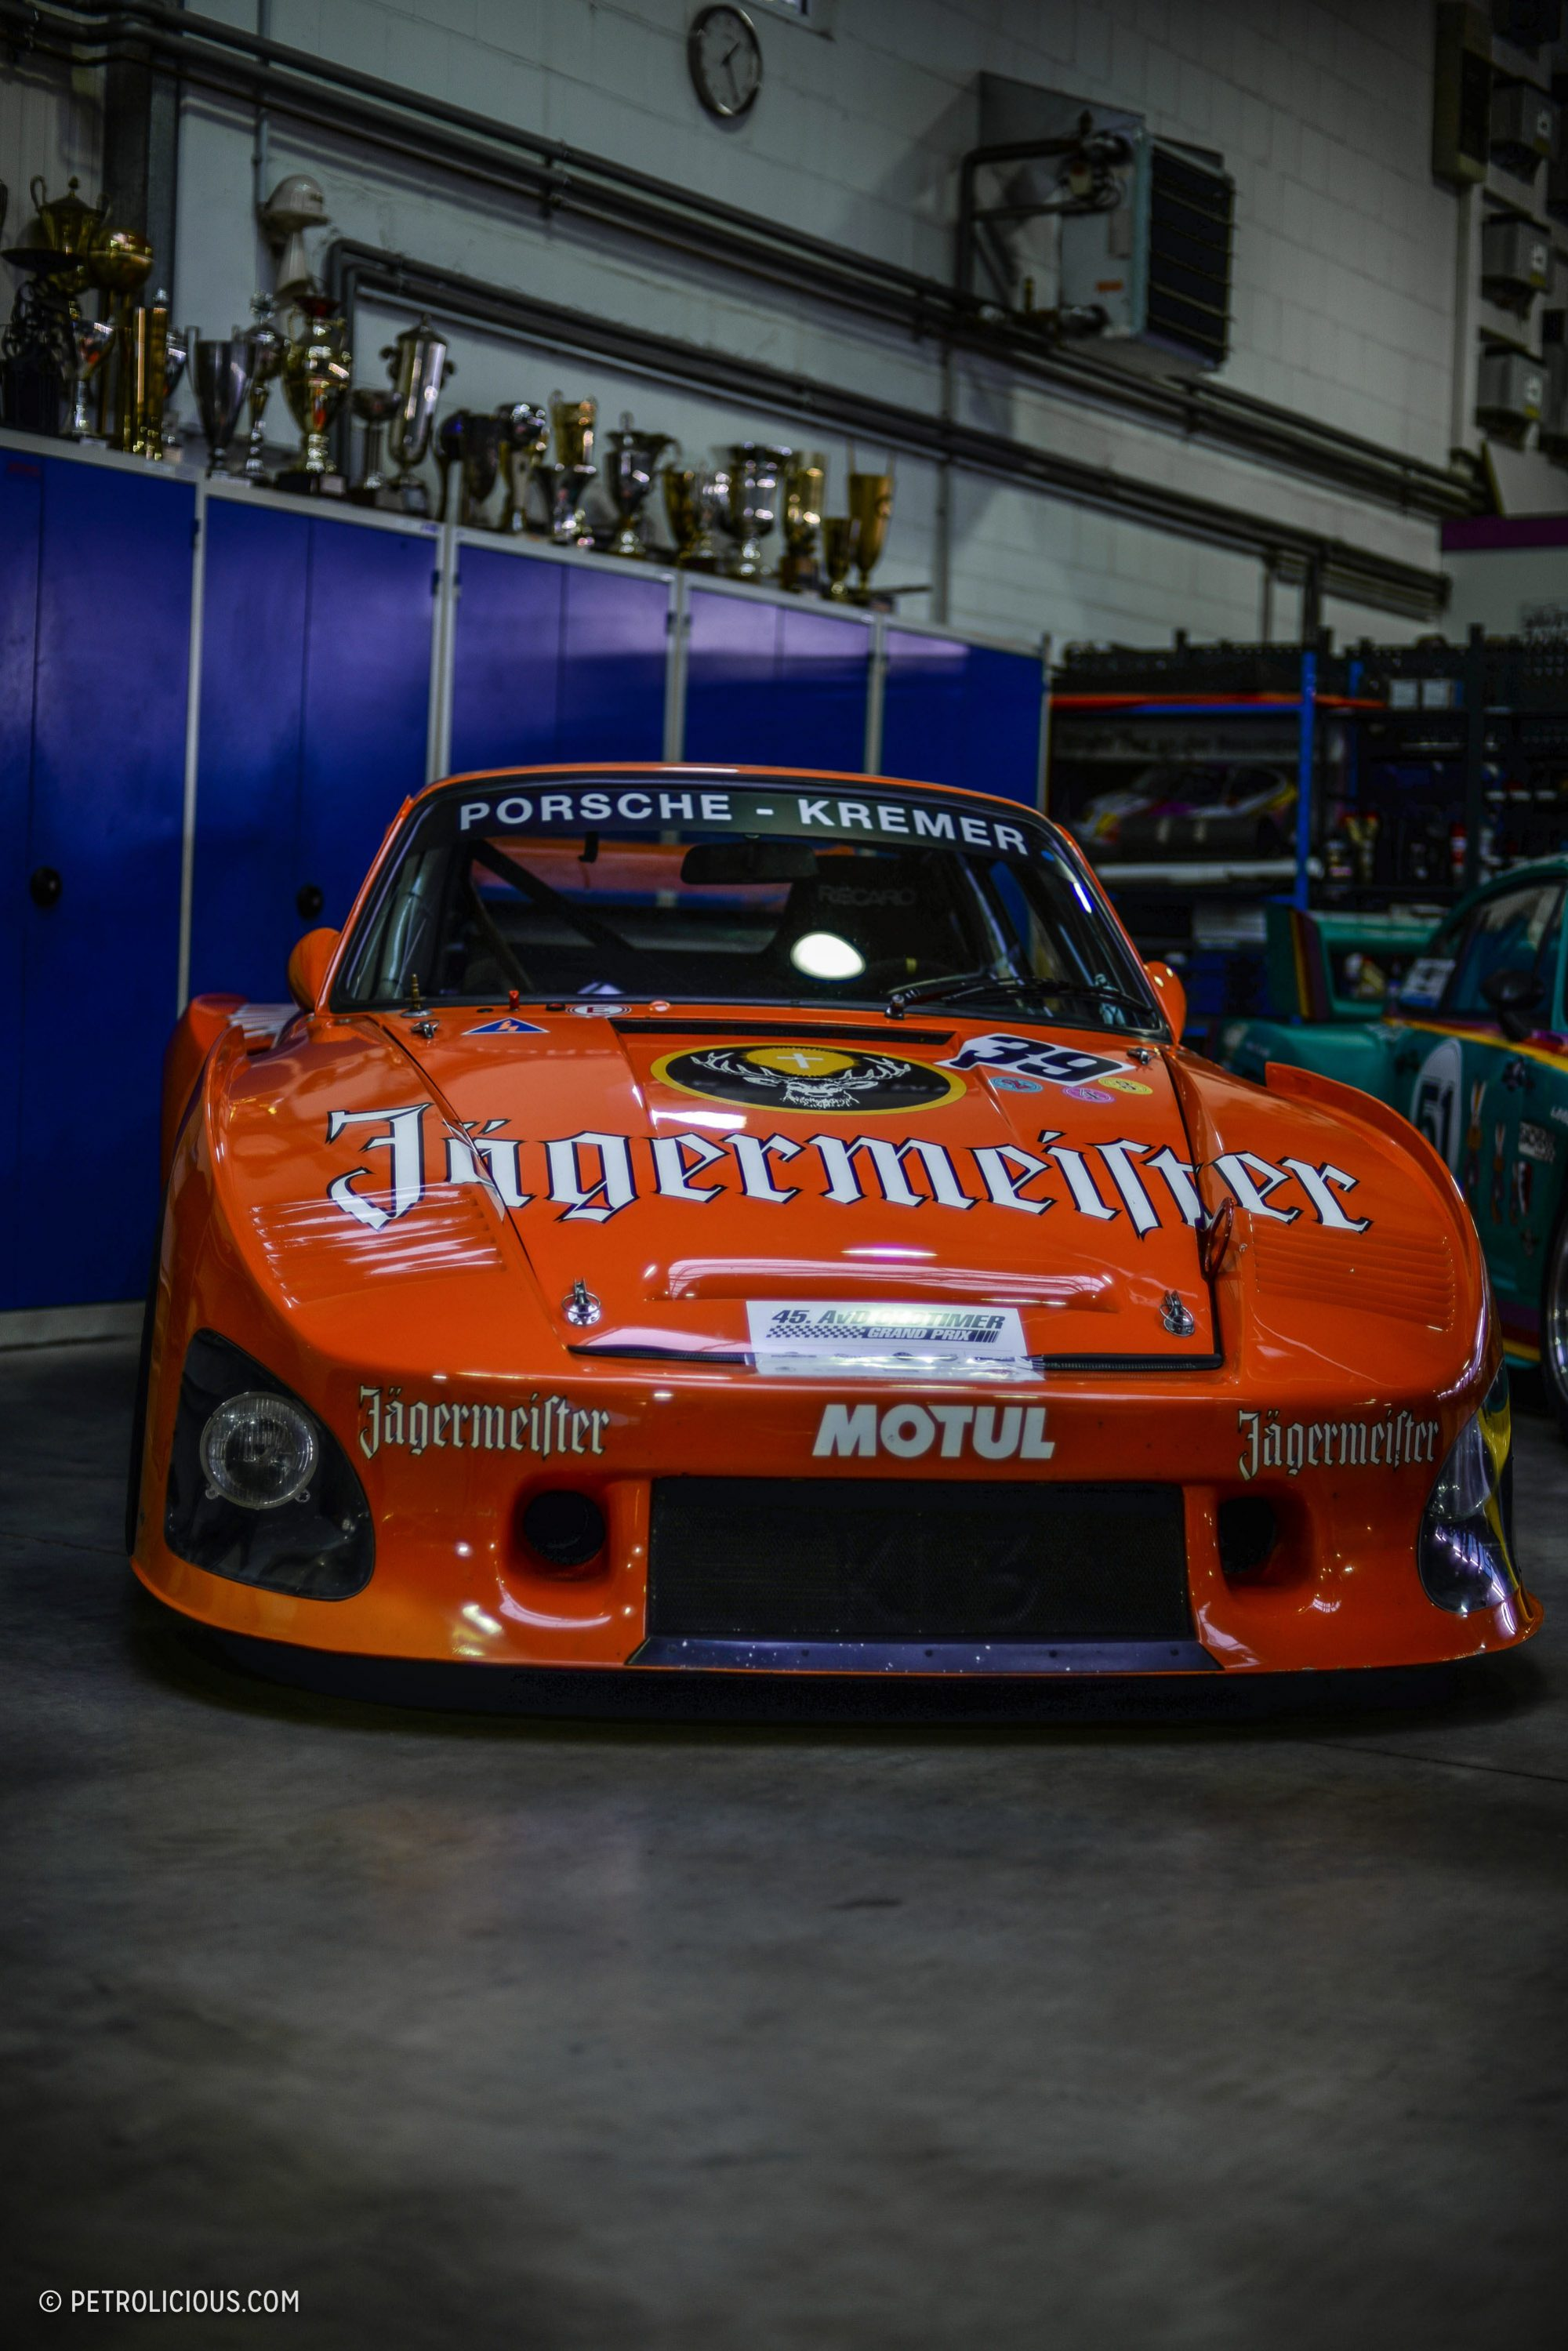 Visiting The Garage That Beat Porsche At Their Own Game